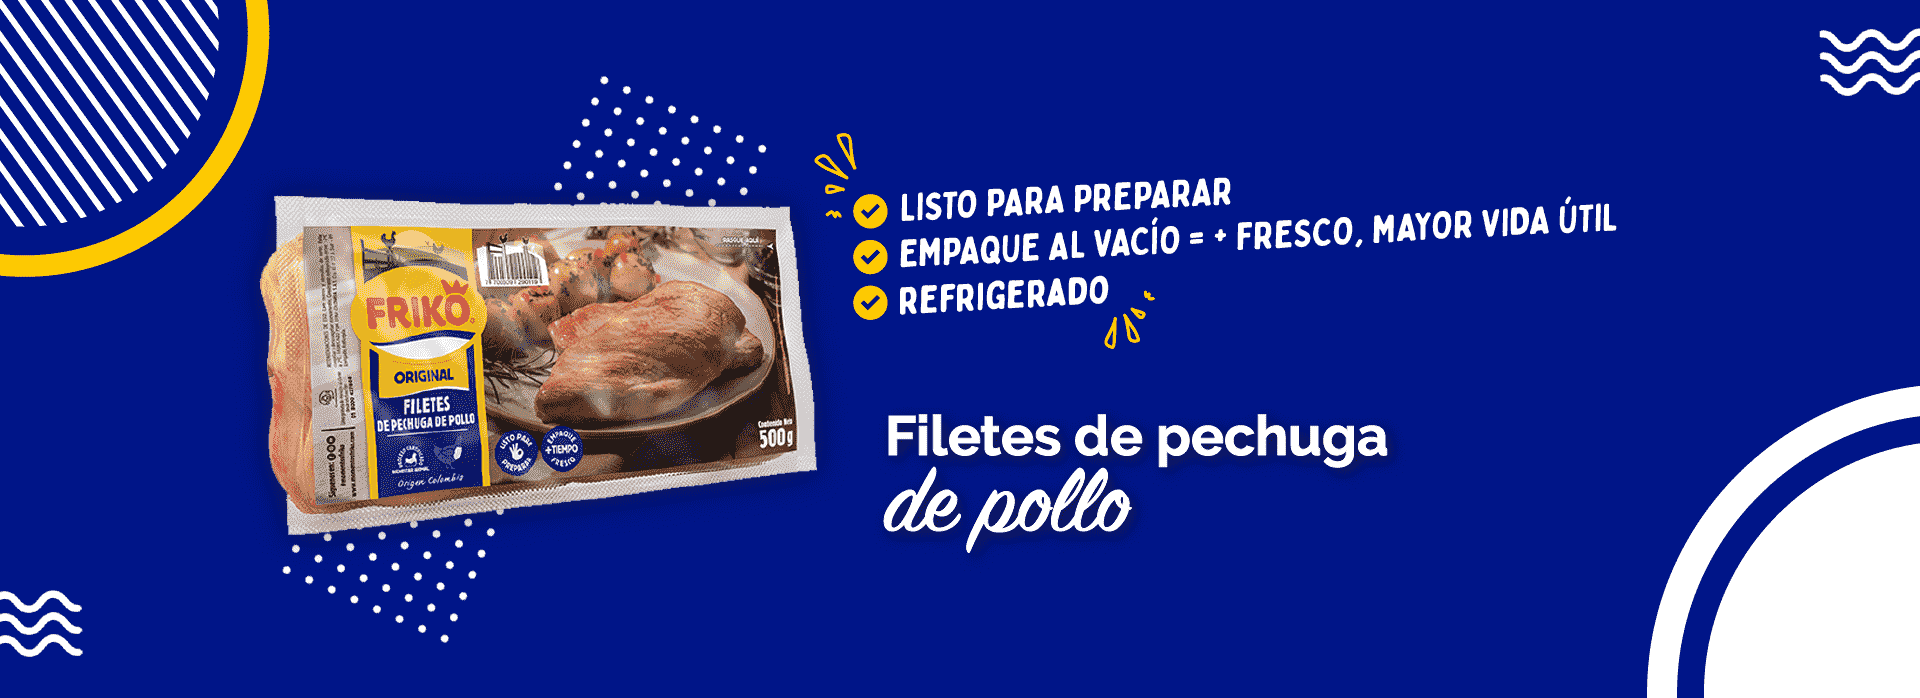 Productos pollo Friko